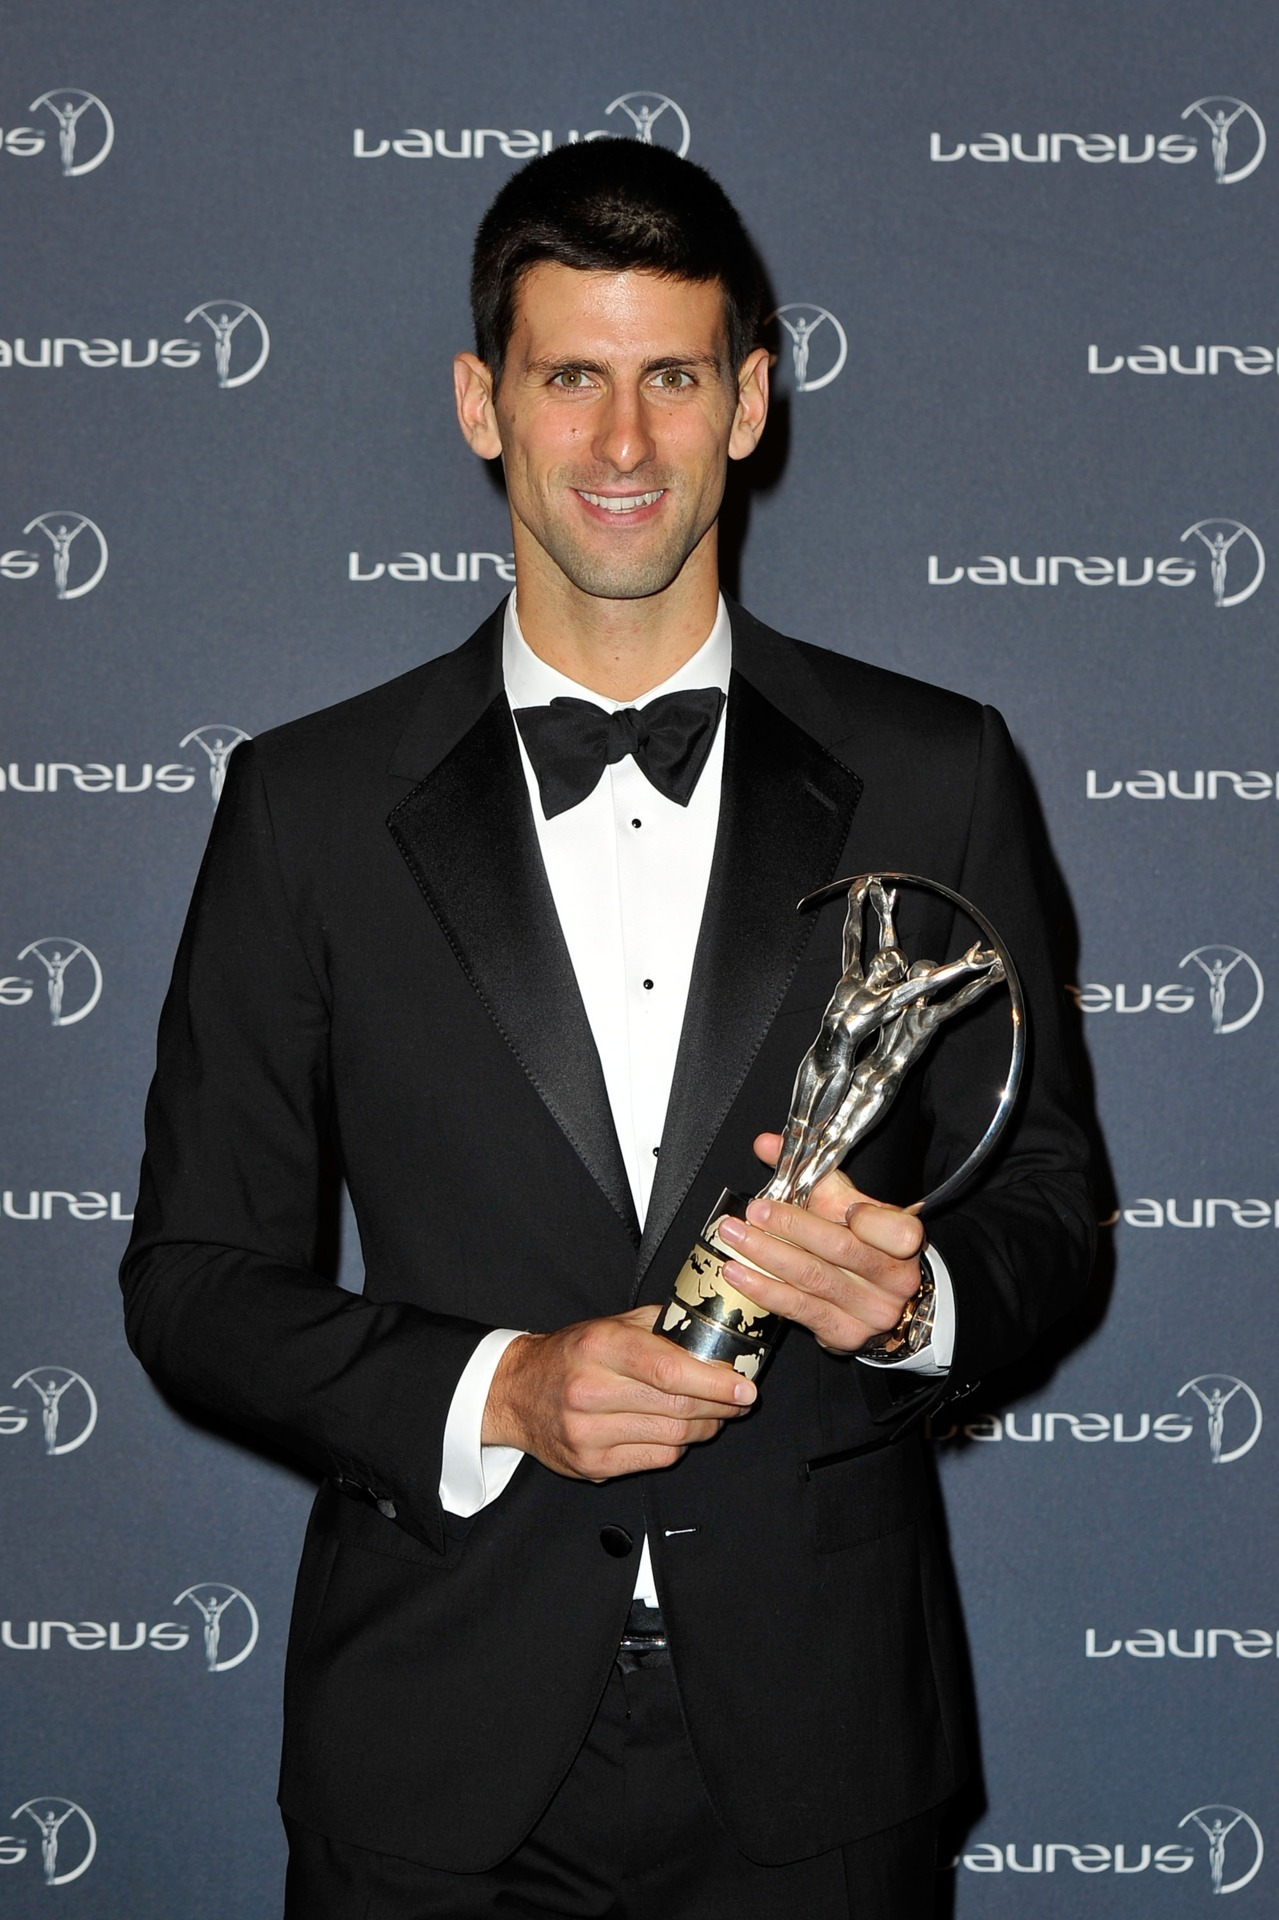 Congratulations to tennis champion Mr Novak Djokovic for a) winning the Laureus World Sportsman of the Year 2011 award last night and b) looking damn good doing it in Dolce & Gabbana